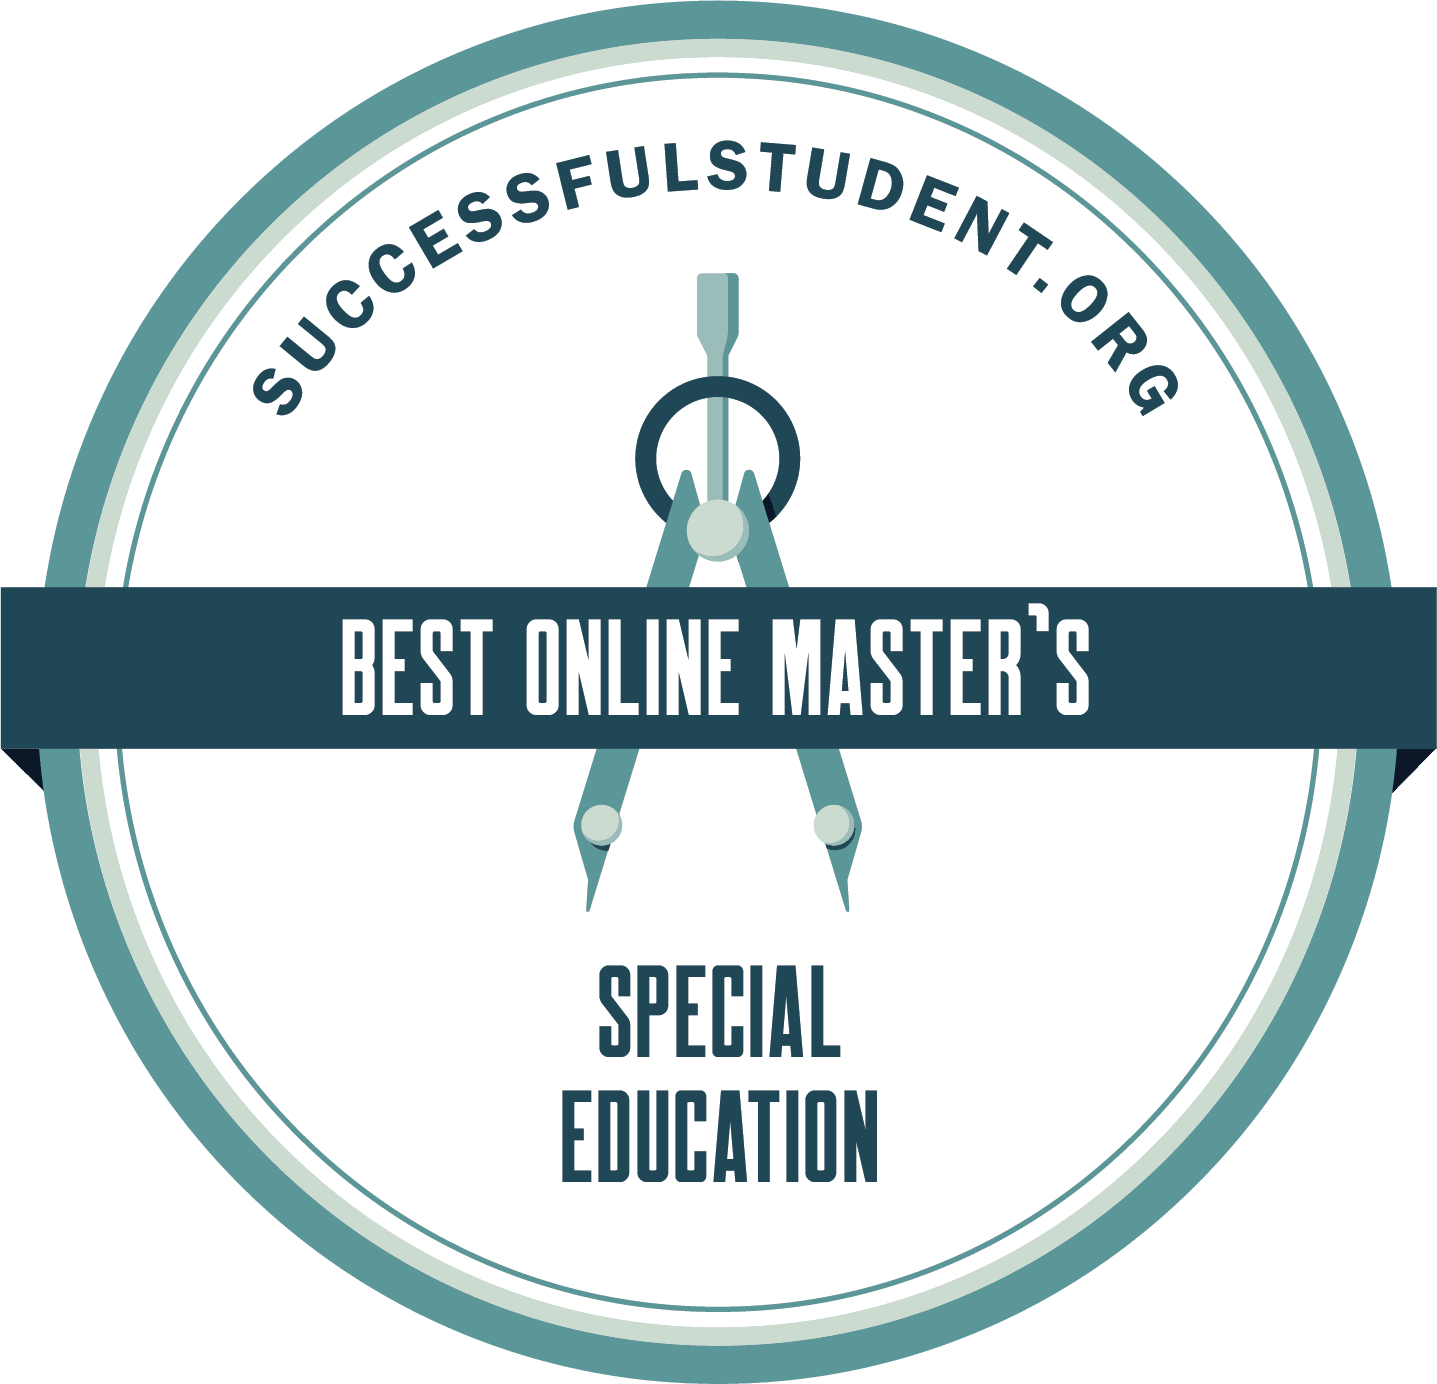 The 25 Best Online Master's in Special Education's Badge